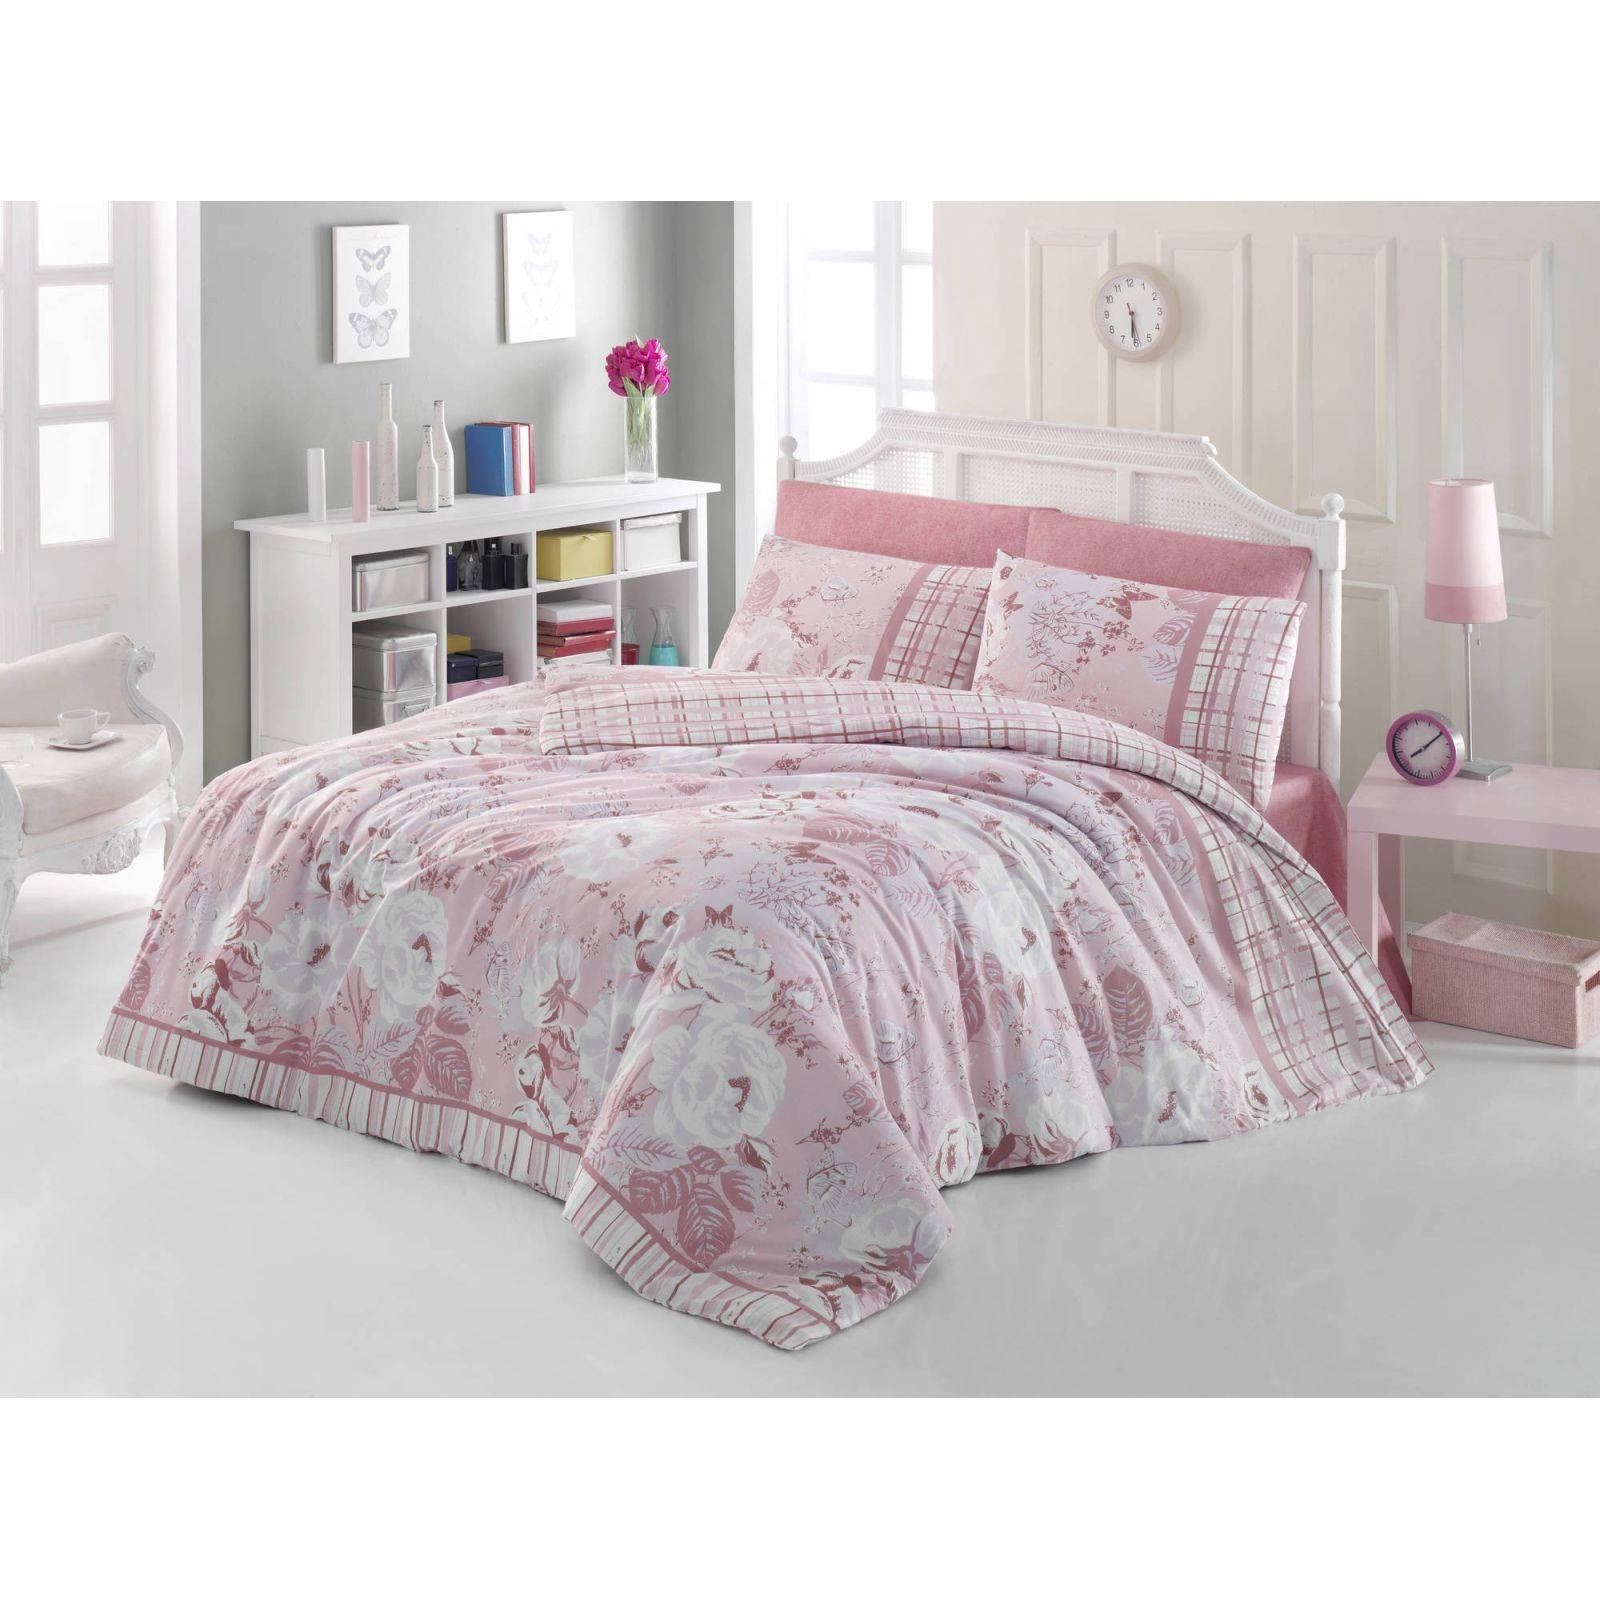 en vogue parure de lit rose clair brandalley. Black Bedroom Furniture Sets. Home Design Ideas